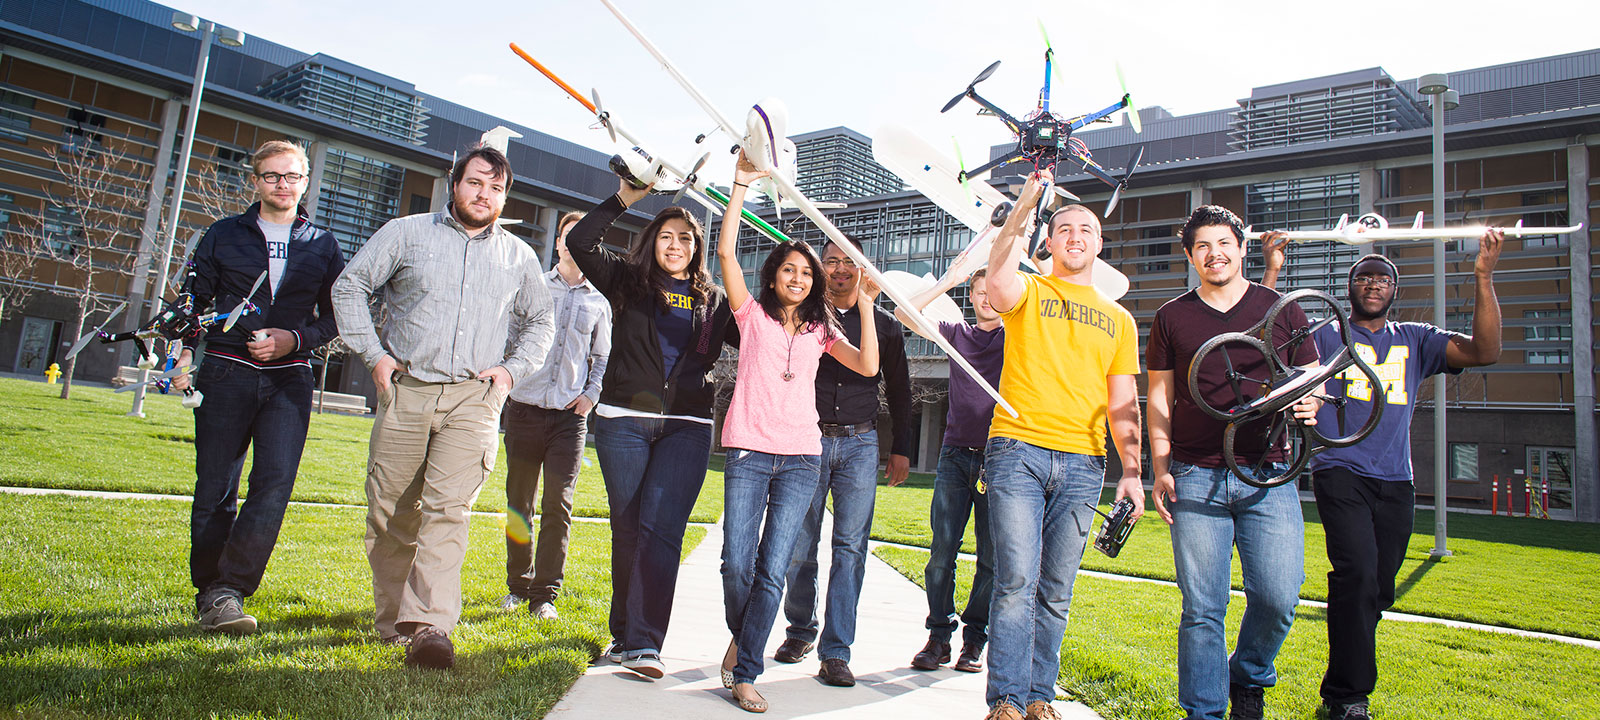 UC Merced banner students drones